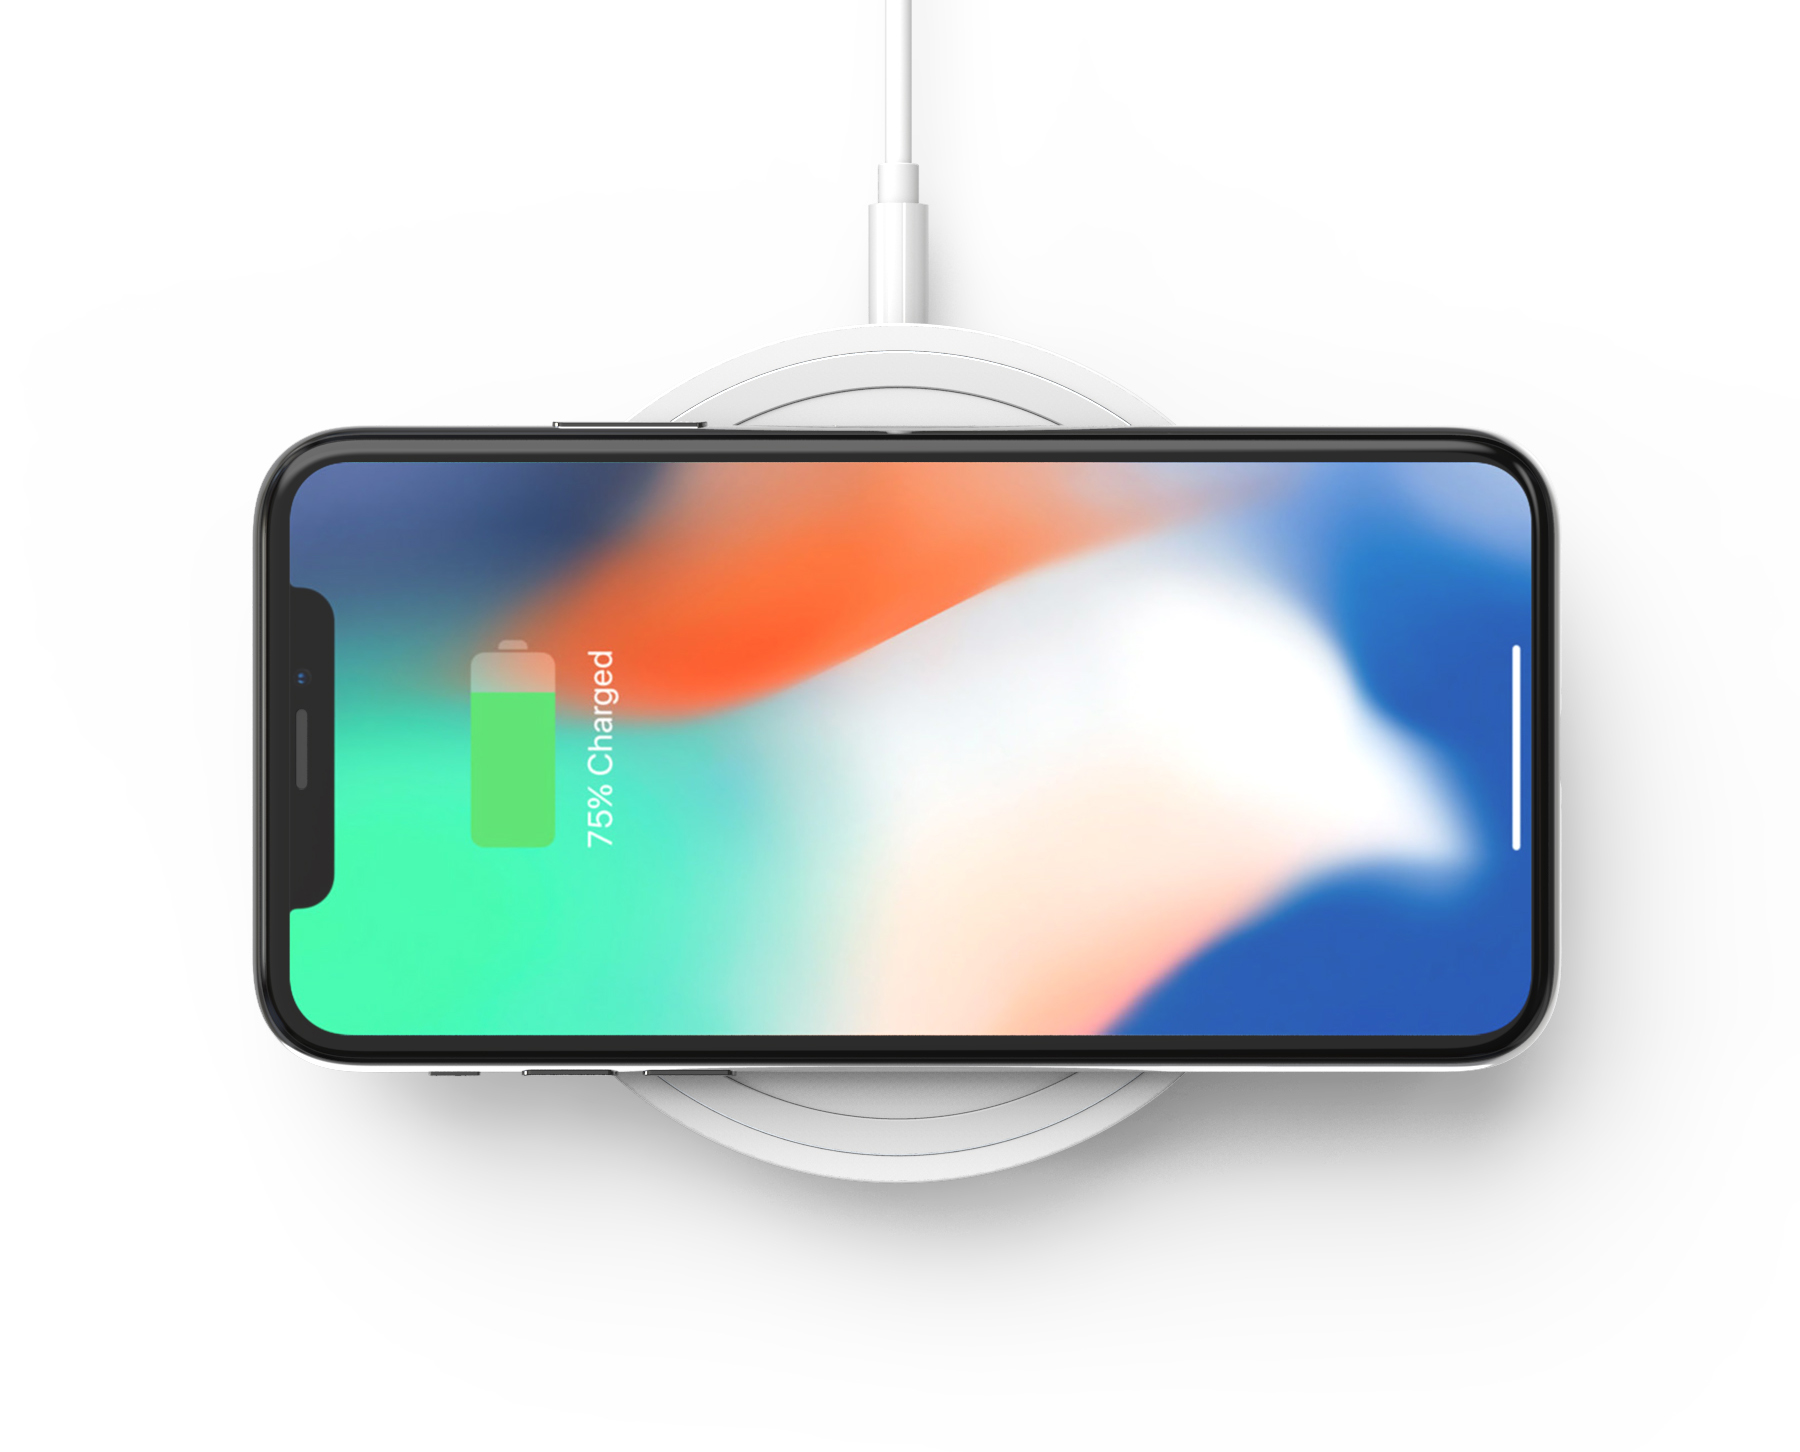 Belkin Announces A New Lineup Of Wireless Charging Pads And Stands For The IPhone X 8